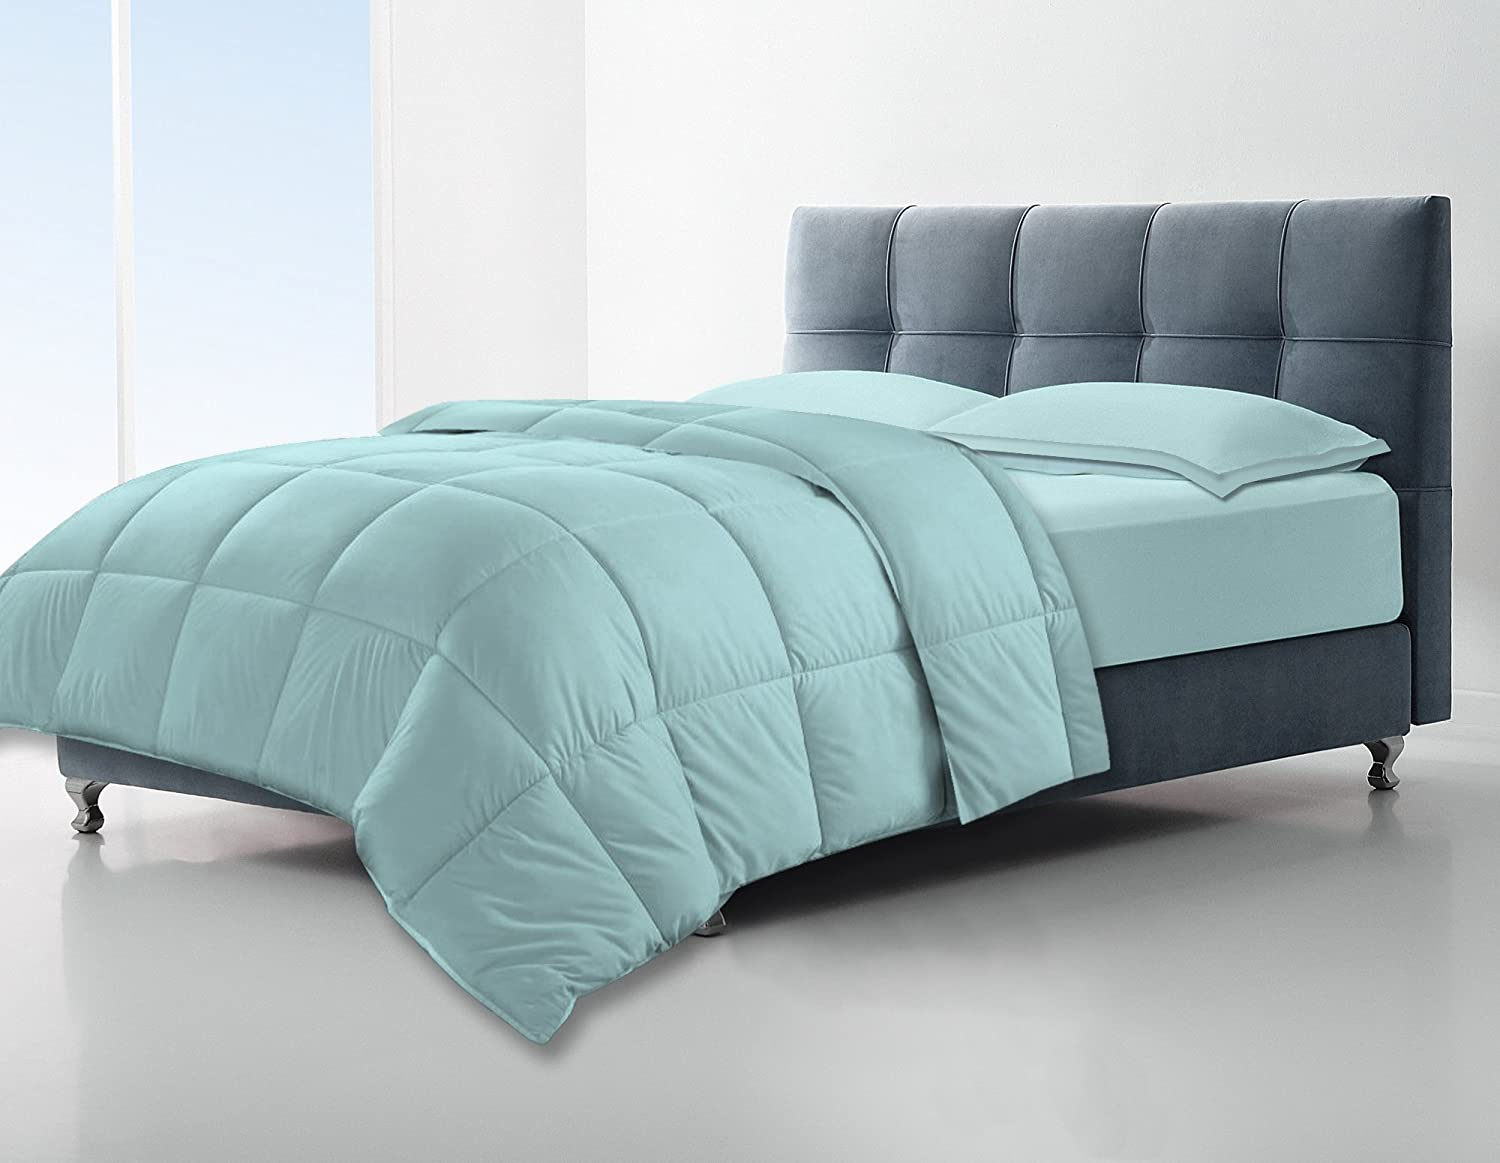 Clara Clark All Season Down Alternative Comforter/Duvet, Full/Queen, Light Blue Aqua